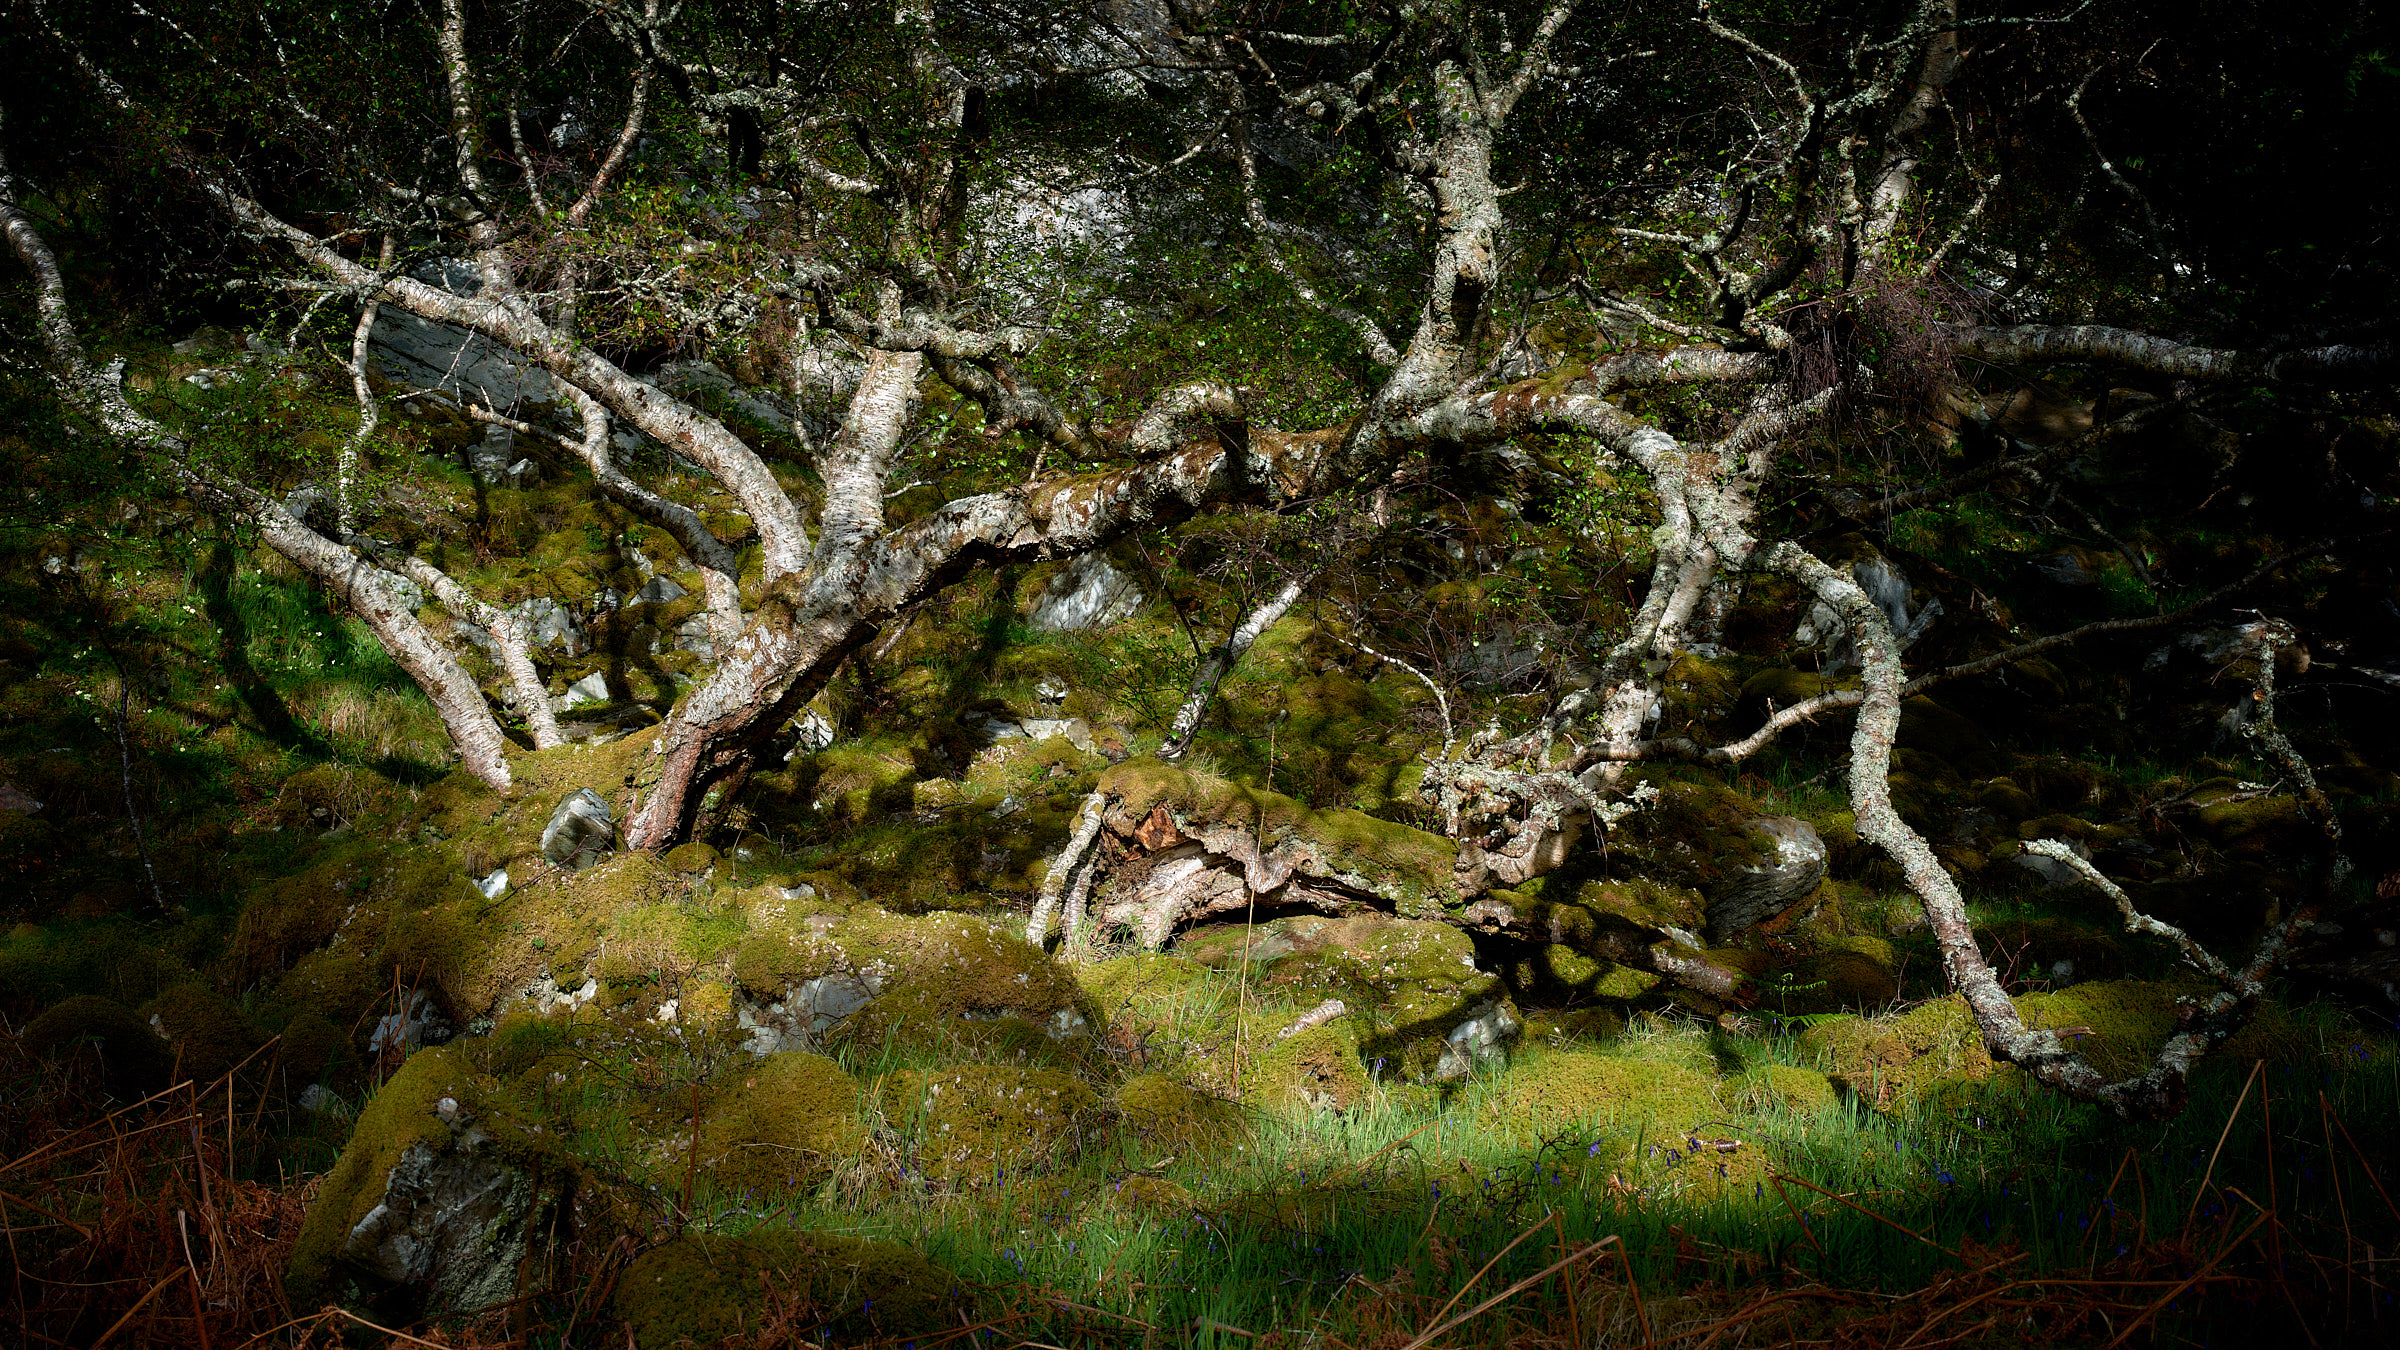 Silver Birch Sutherland by 4*Paul in Regular Member Gallery